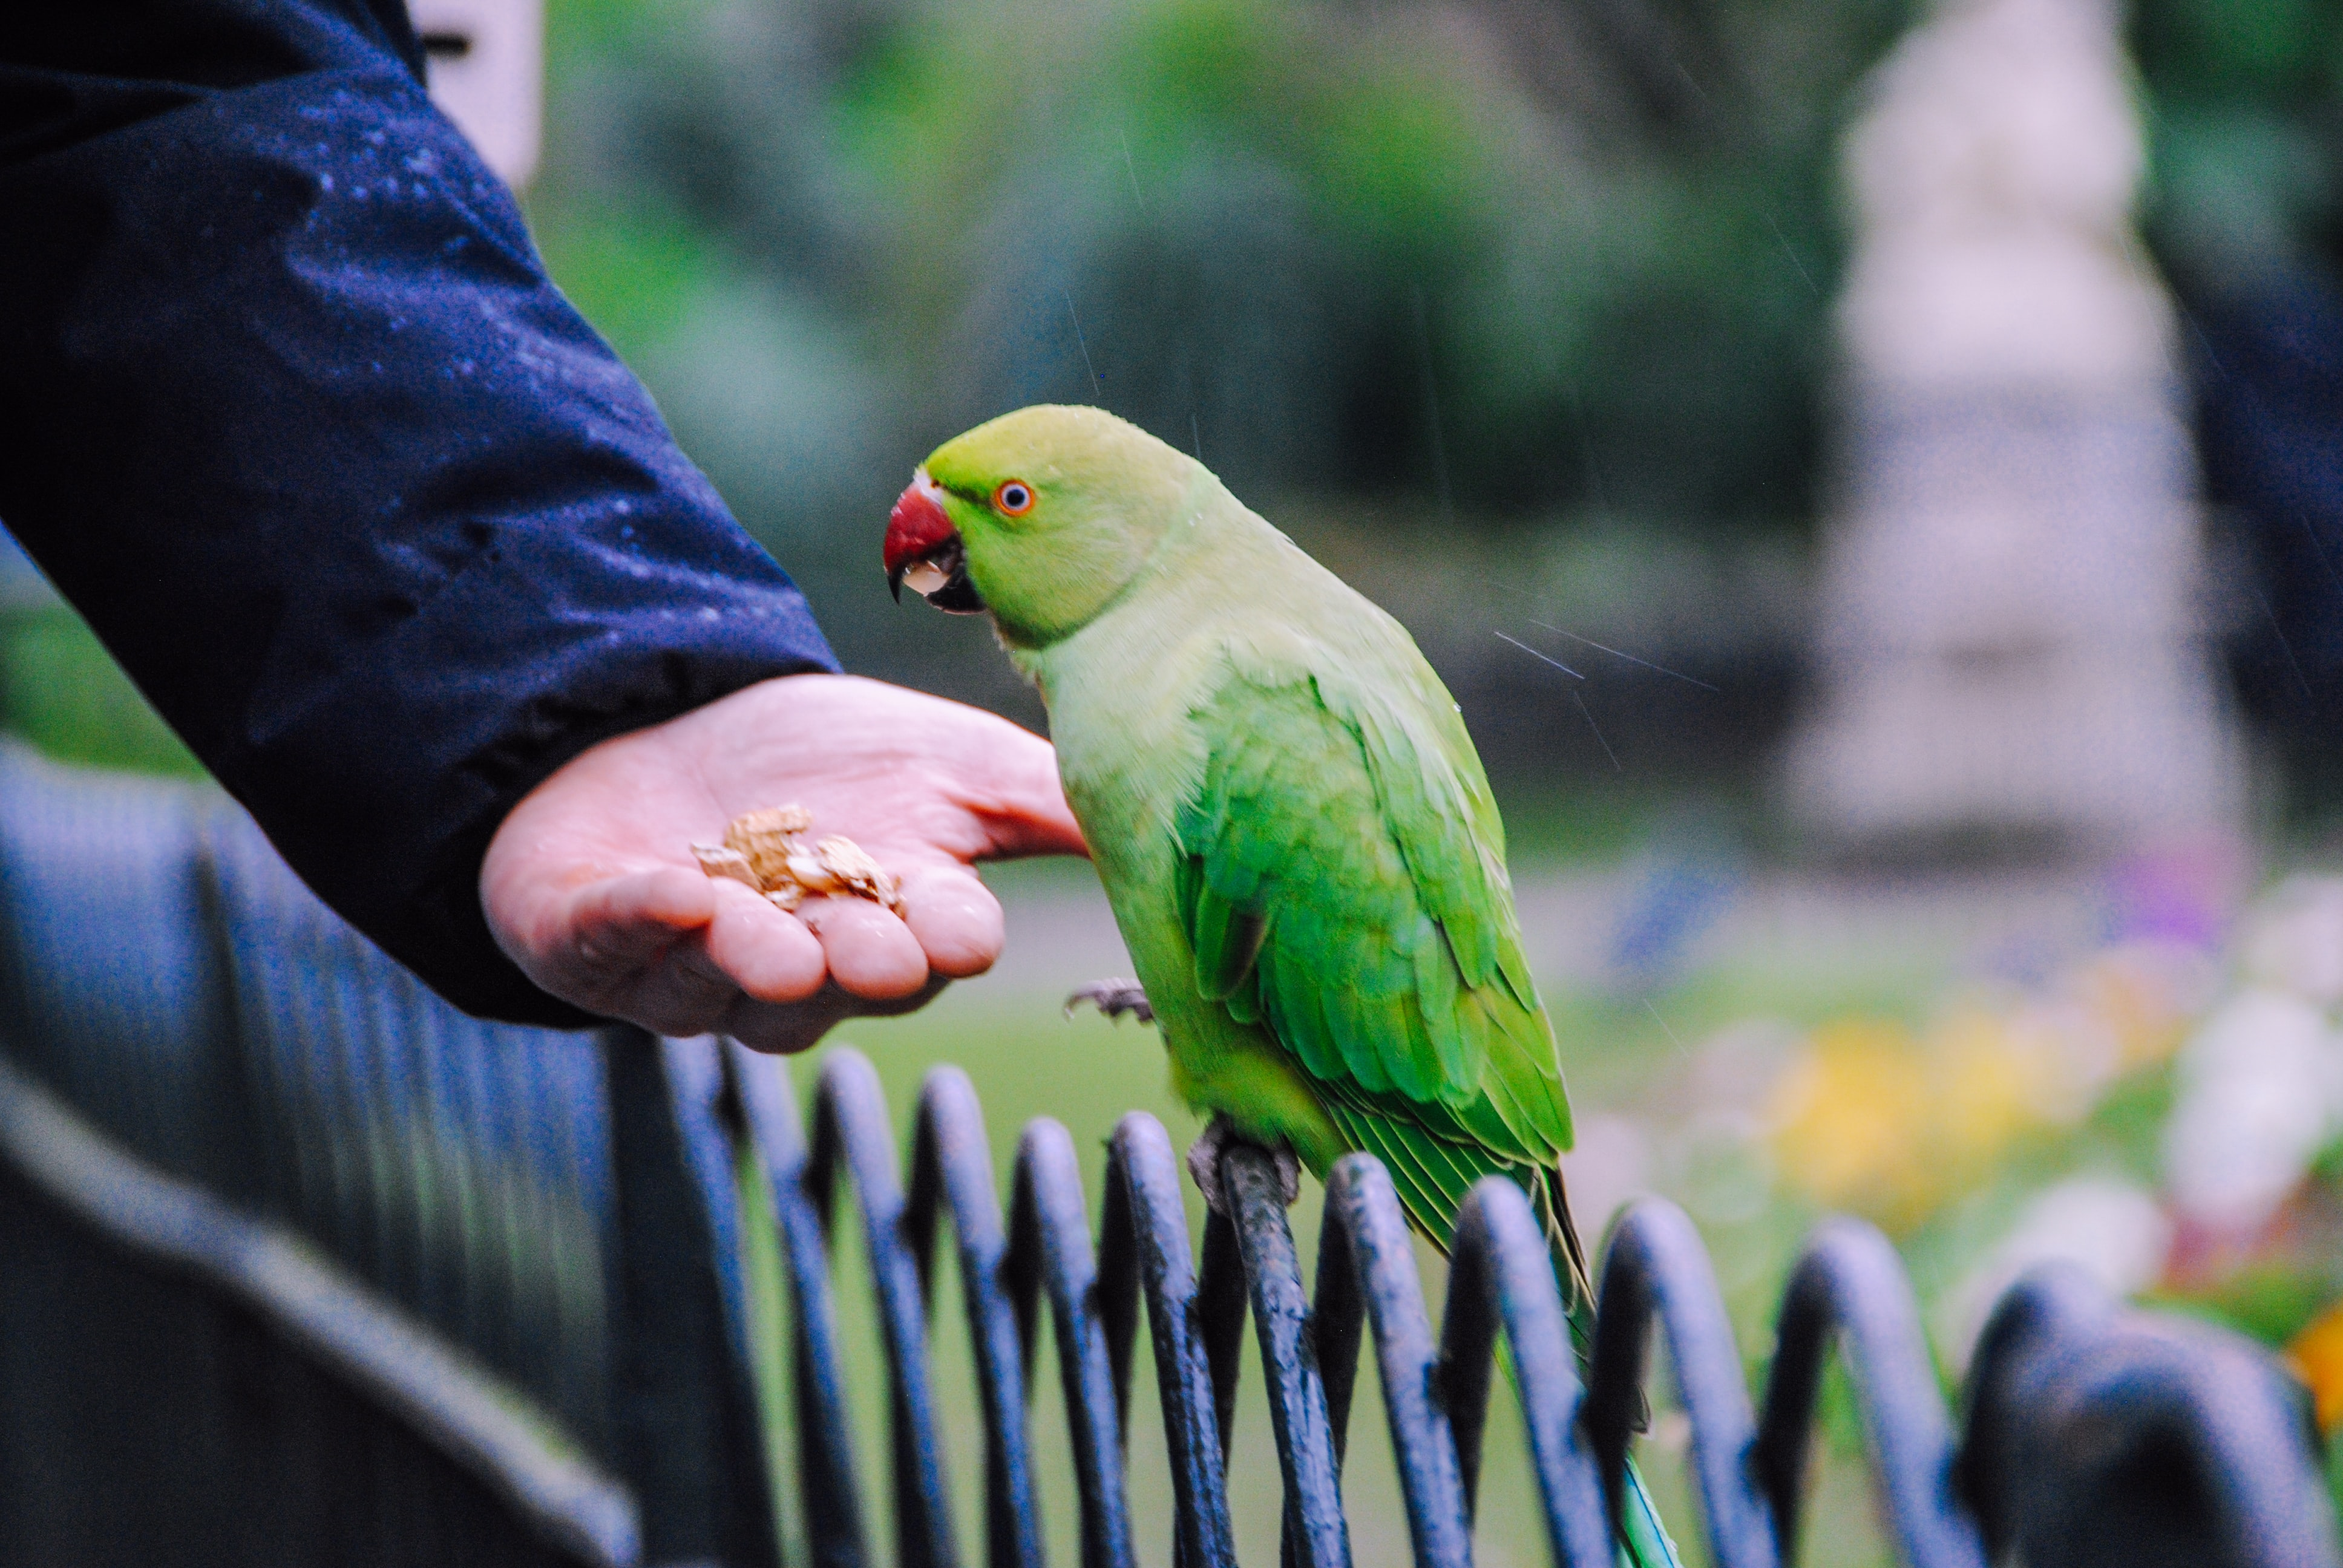 Green bird perched on a fence, eating food out of a person's hand